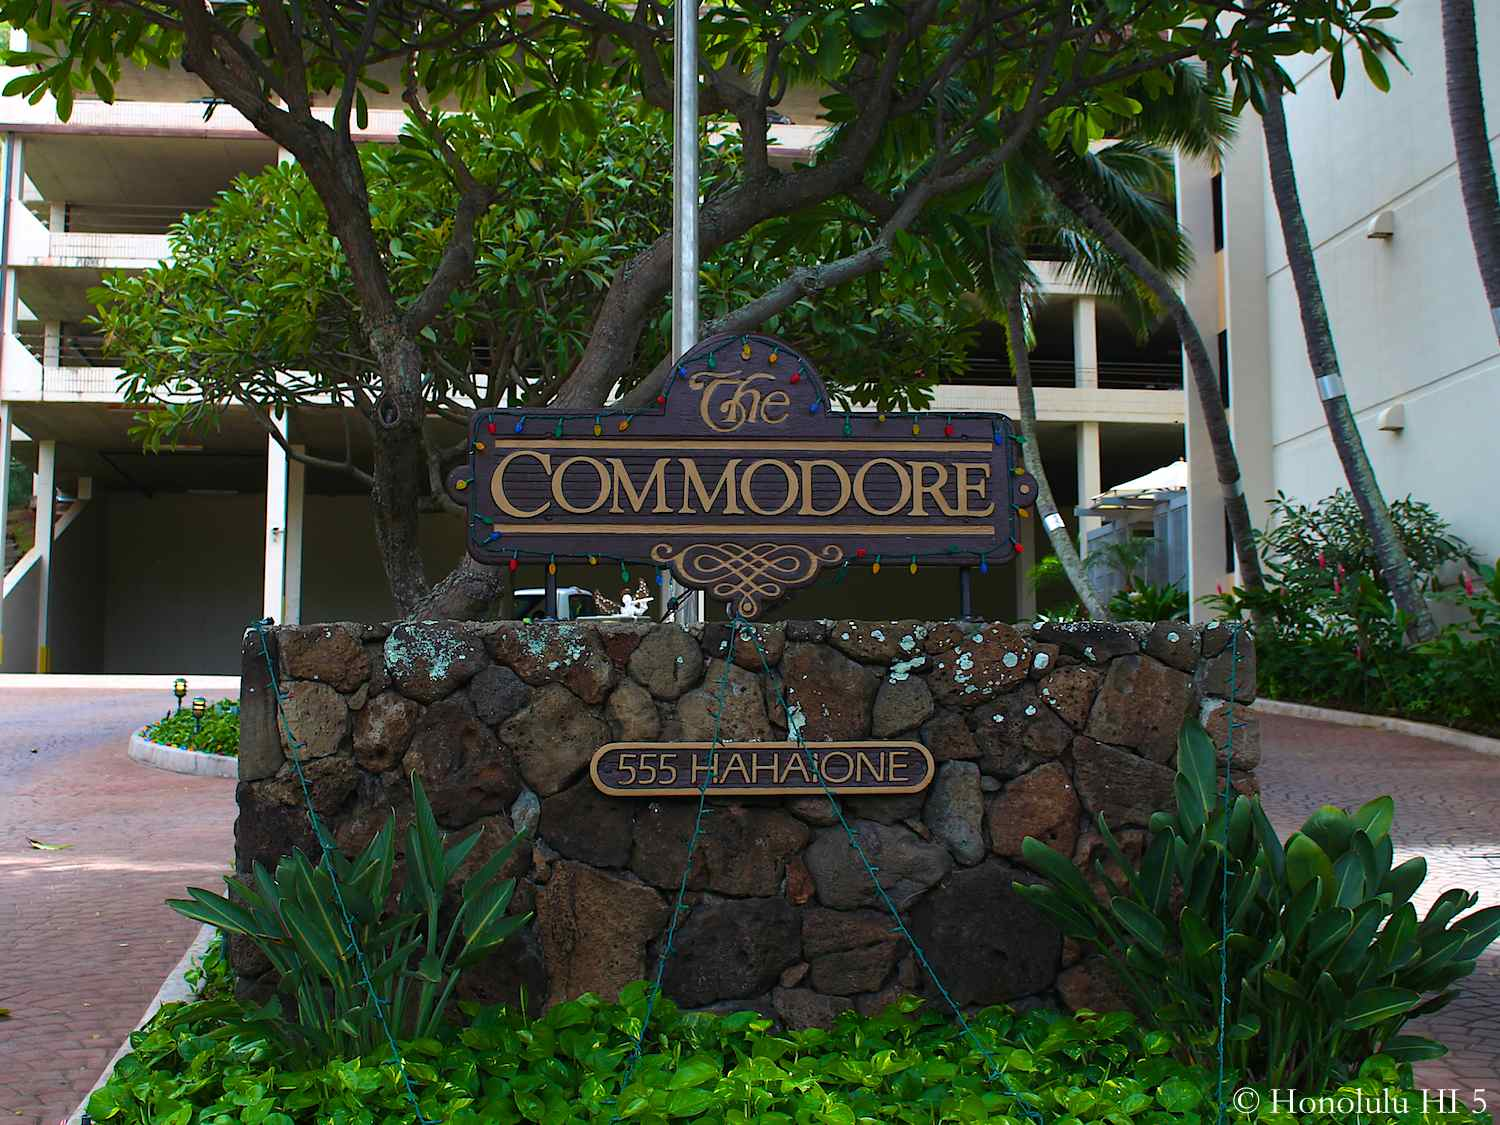 The Commodore Condo in Hawaii Kai Brown Entrance Sign With Bushes Around